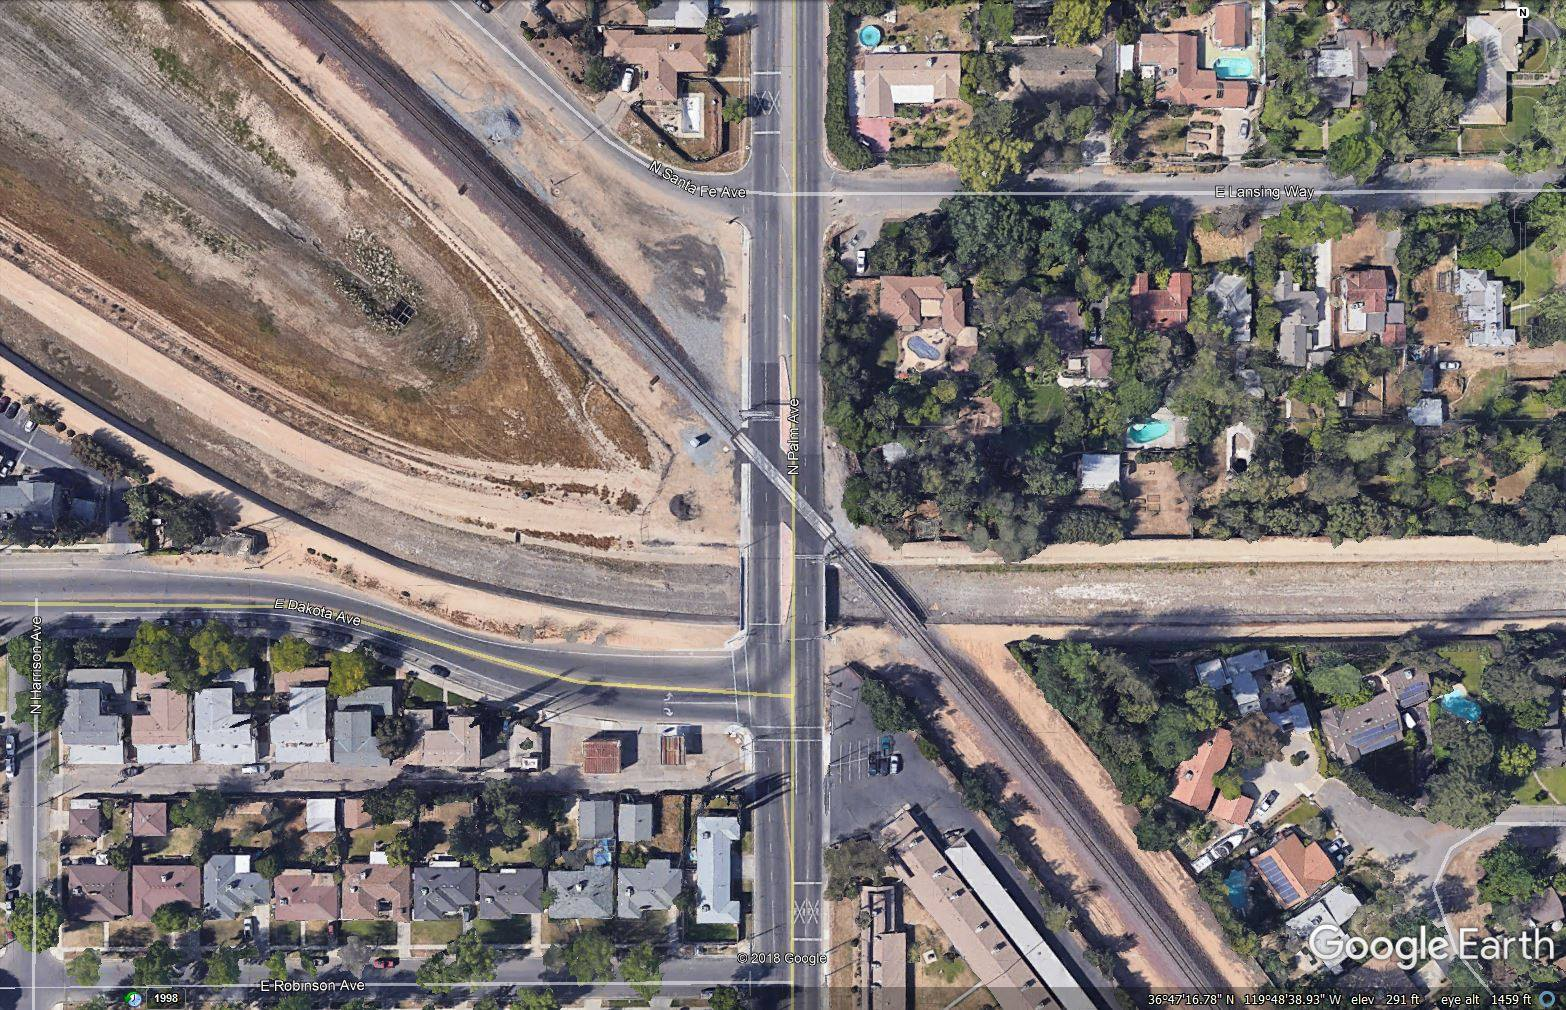 Skyview picture of intersection of Dakota and Ashlan